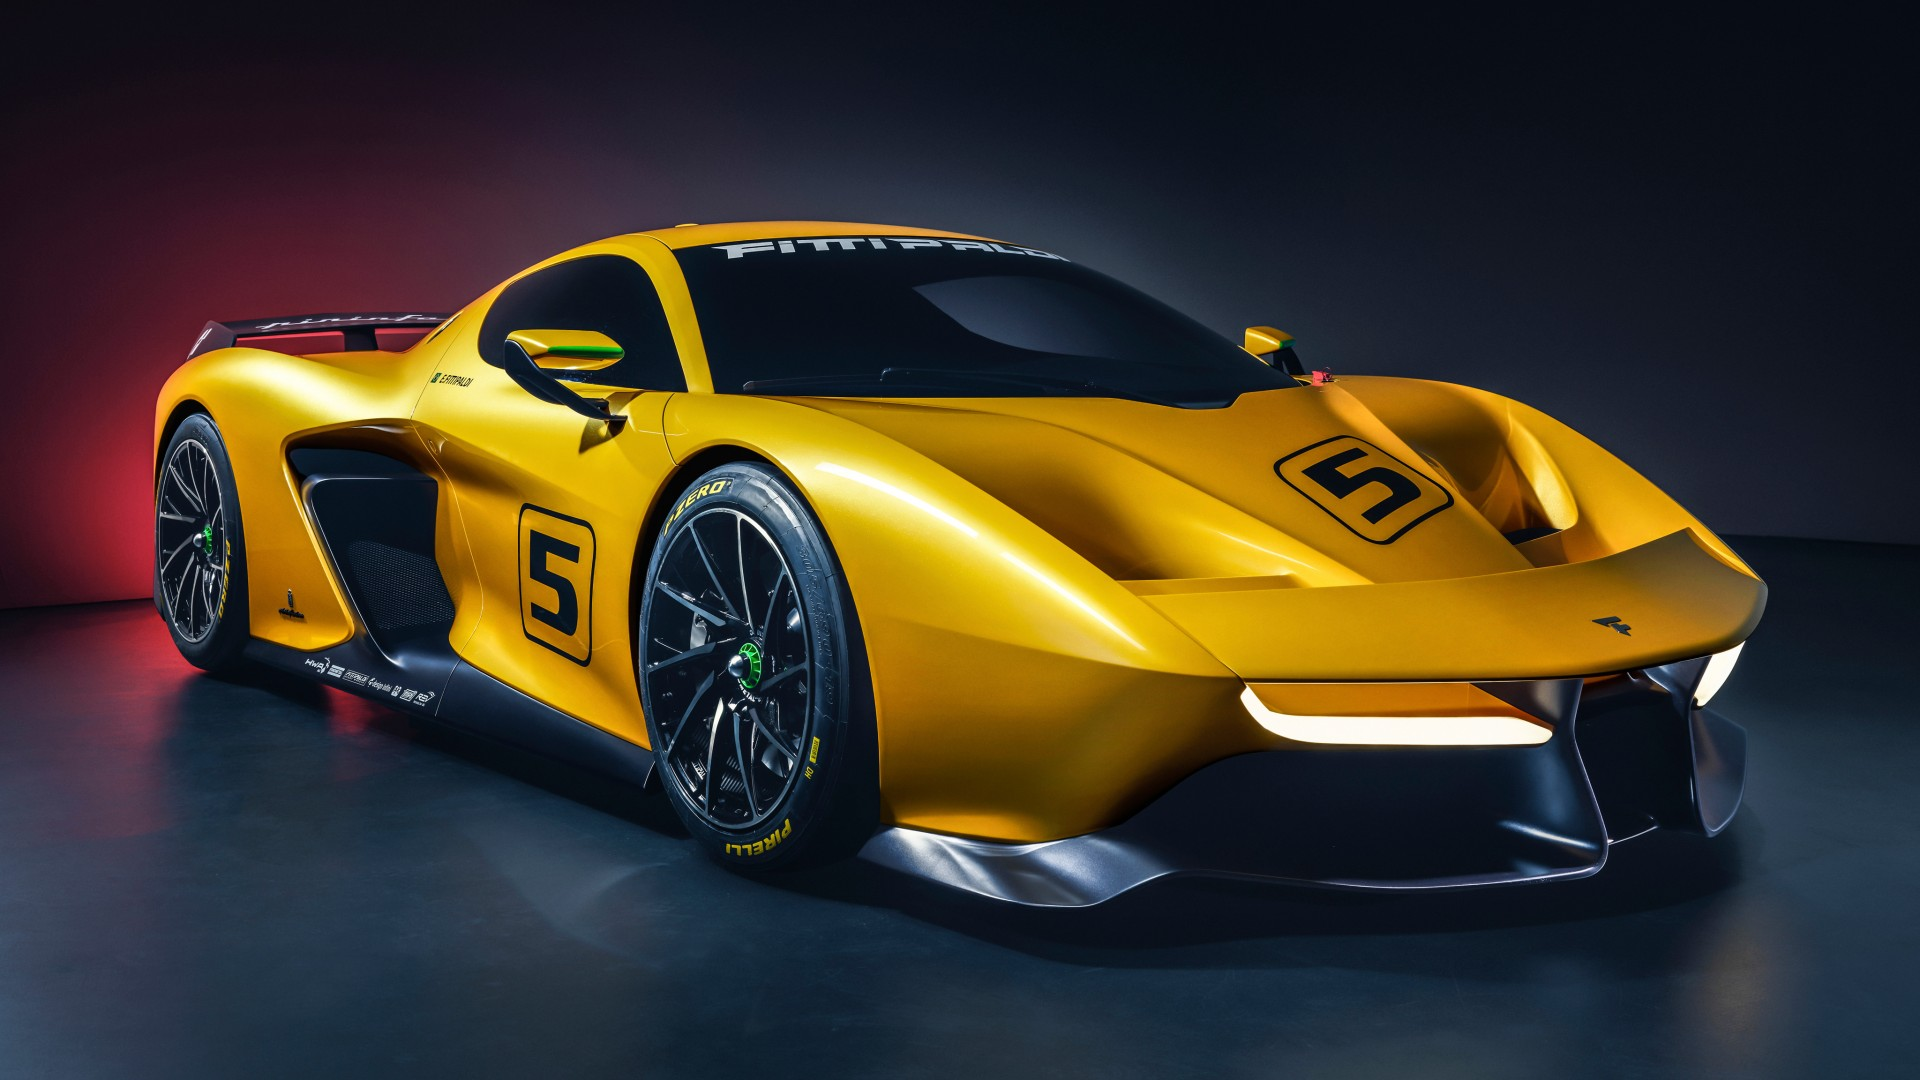 Fittipaldi EF7 Vision Gran Turismo 2017 4K Wallpaper | HD ...